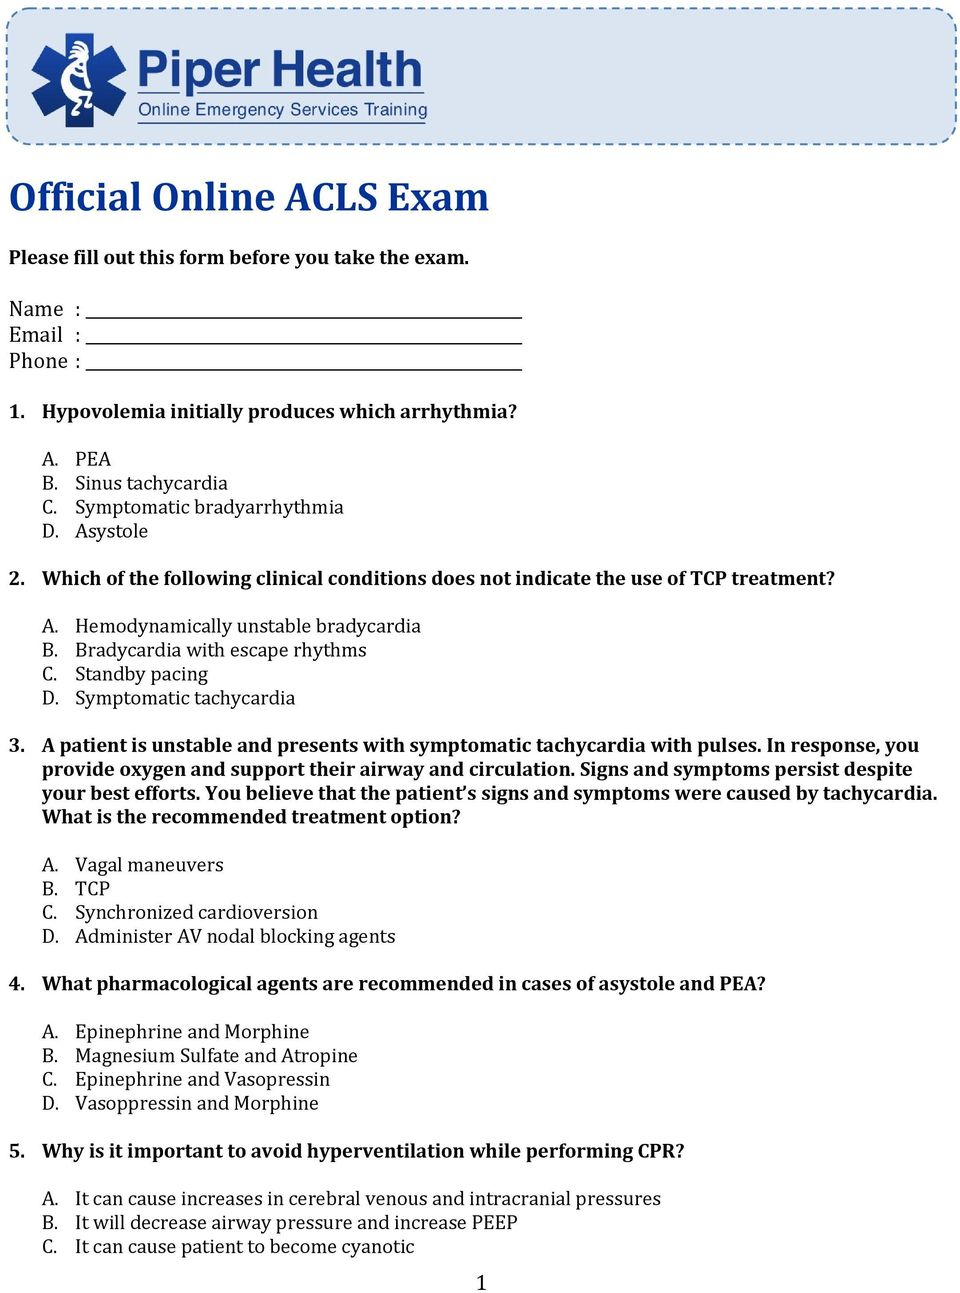 official online acls exam pdf rh docplayer net ACLS Study Guide 2017 2016 ACLS Study Guide